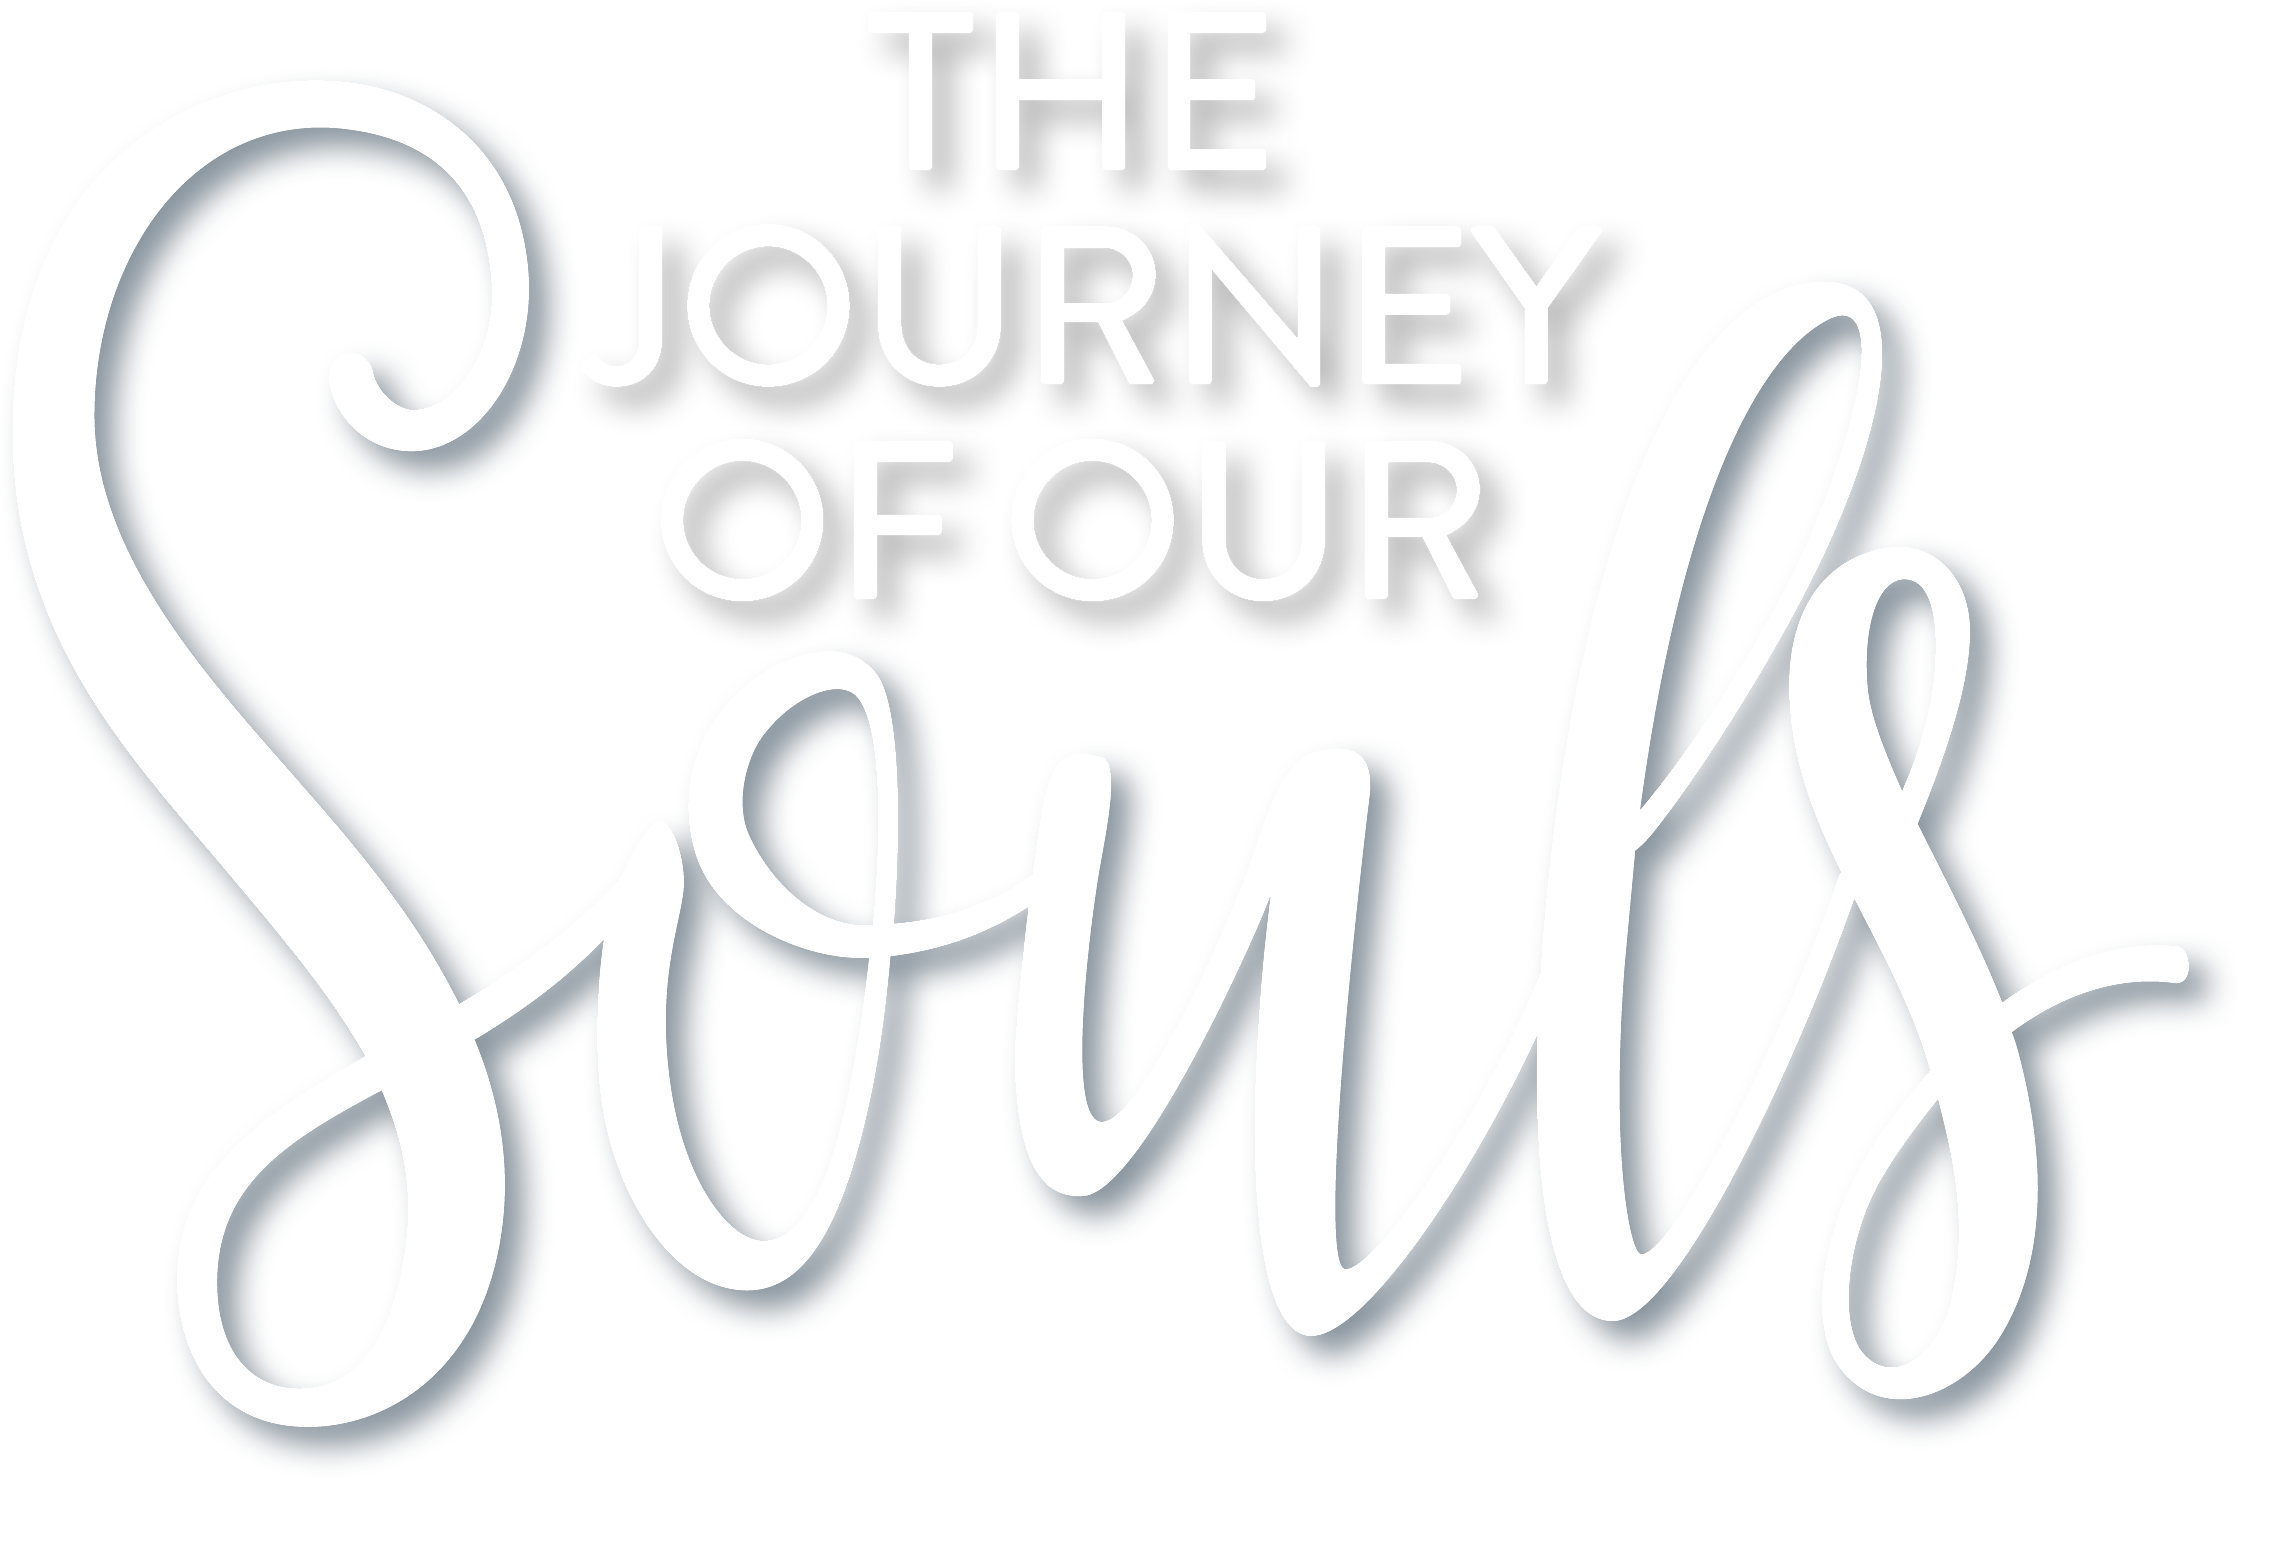 The Journey of Our Souls